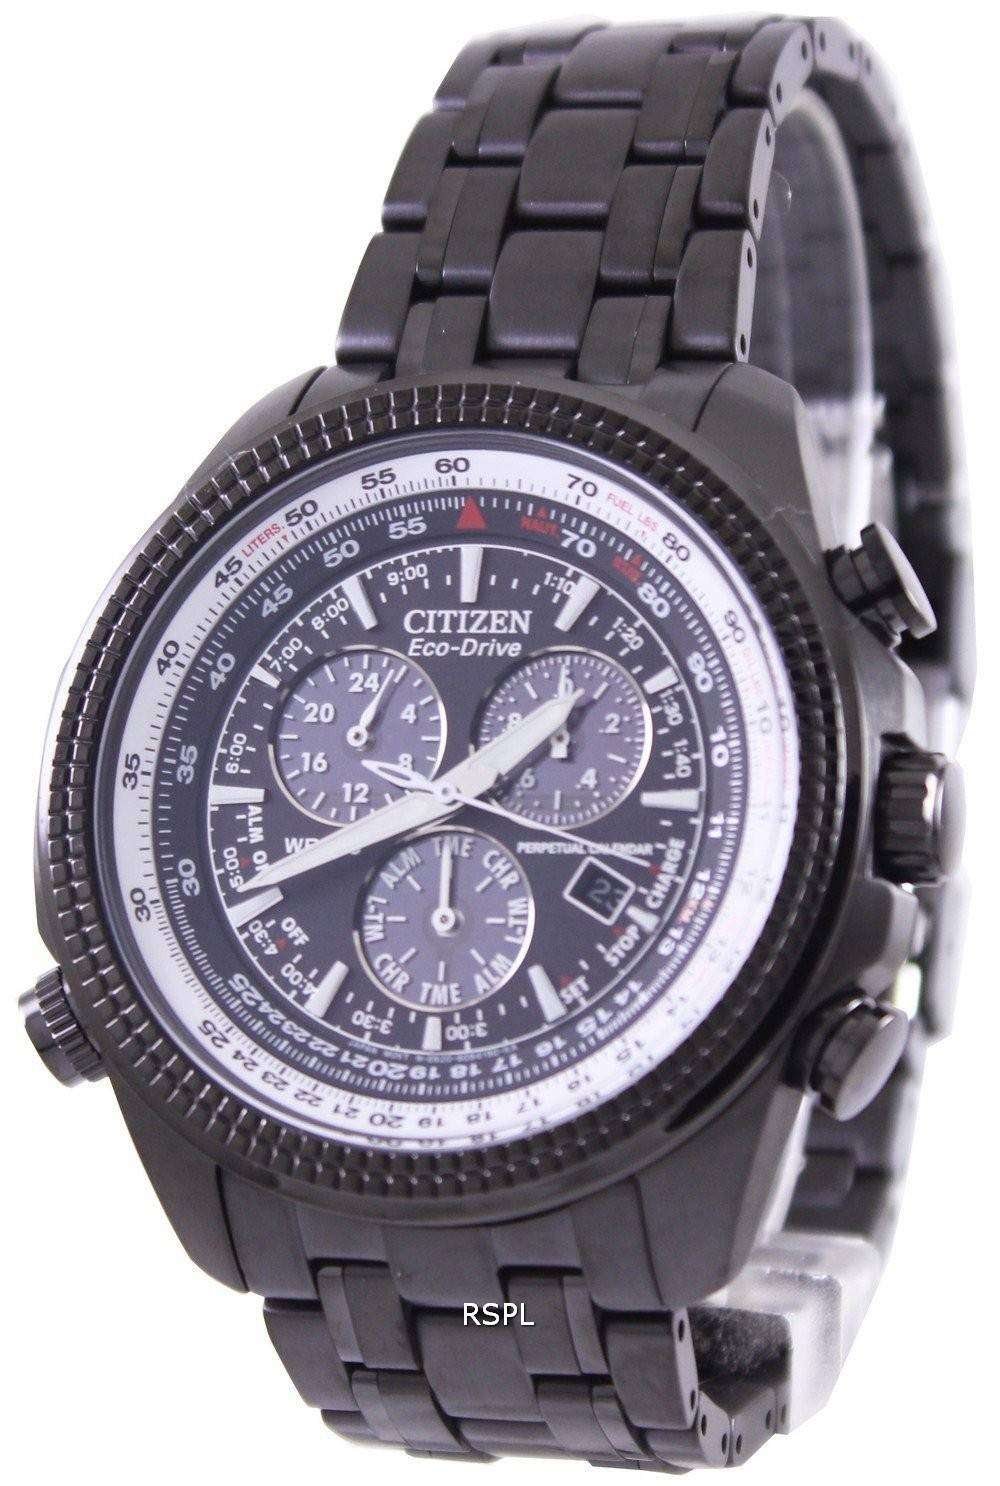 Perpetual Calendar Watch : Citizen eco drive perpetual calendar bl e mens watch